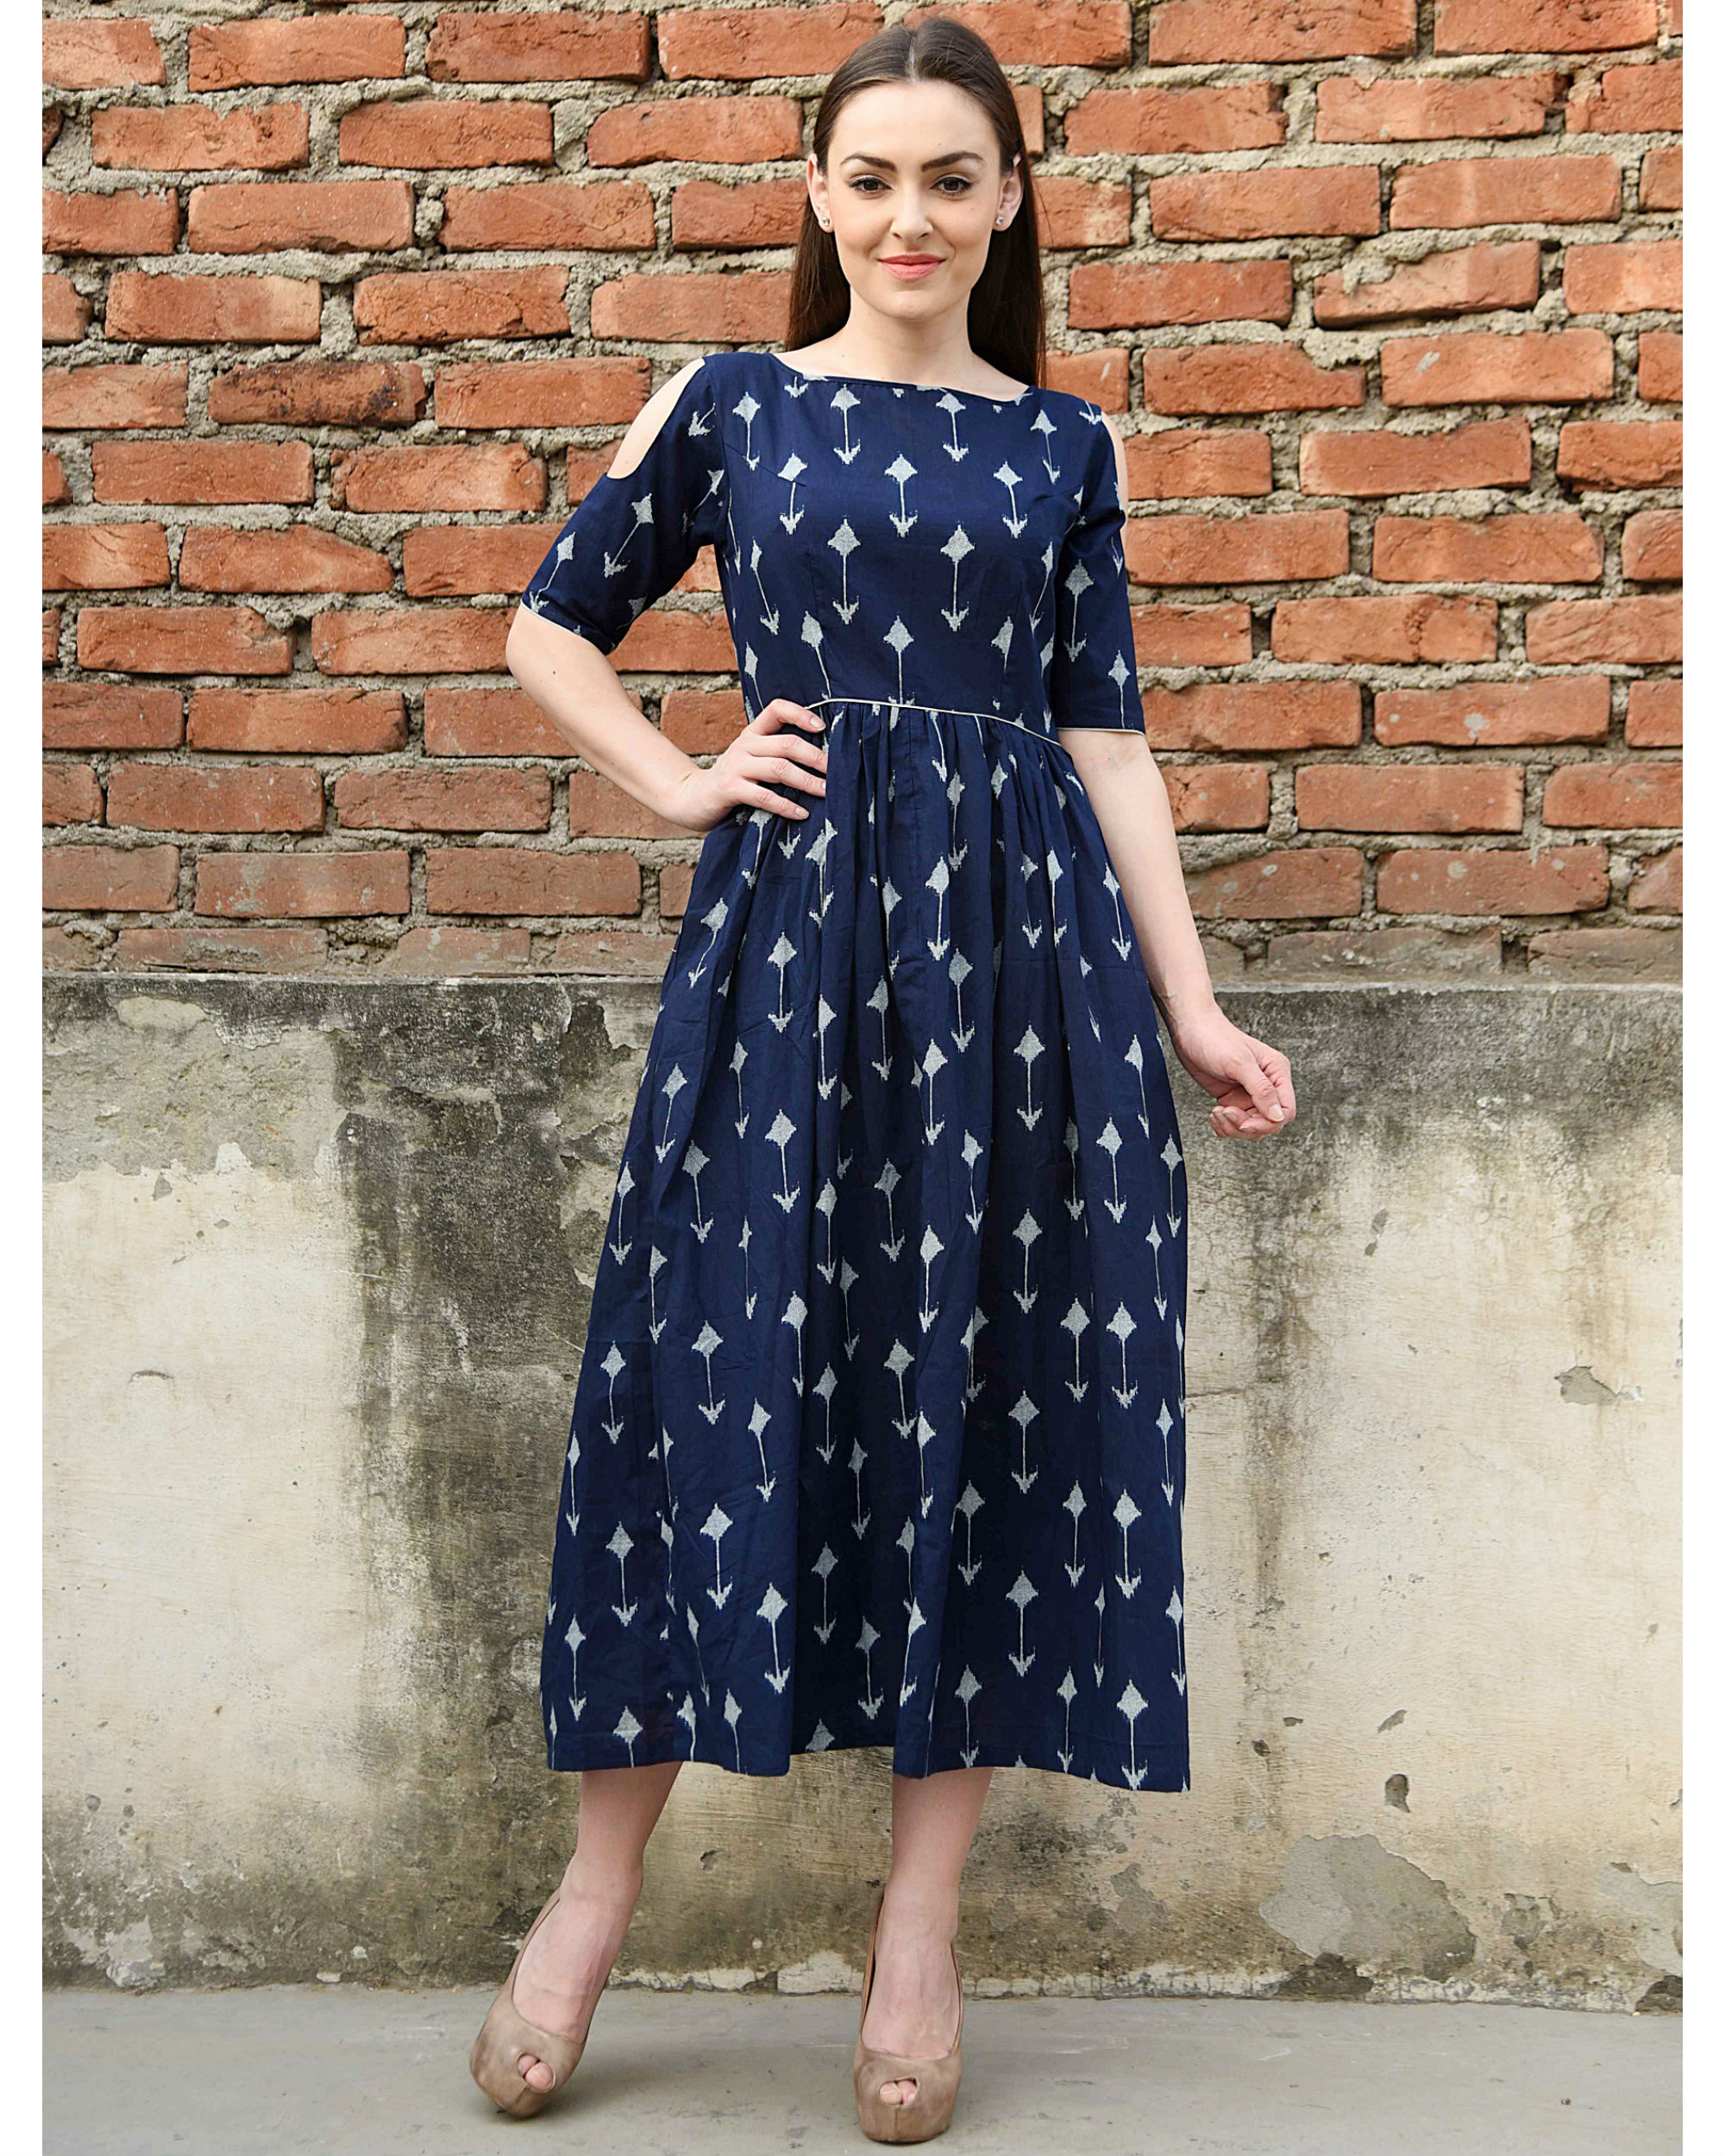 Navy arrow cold shoulder dress